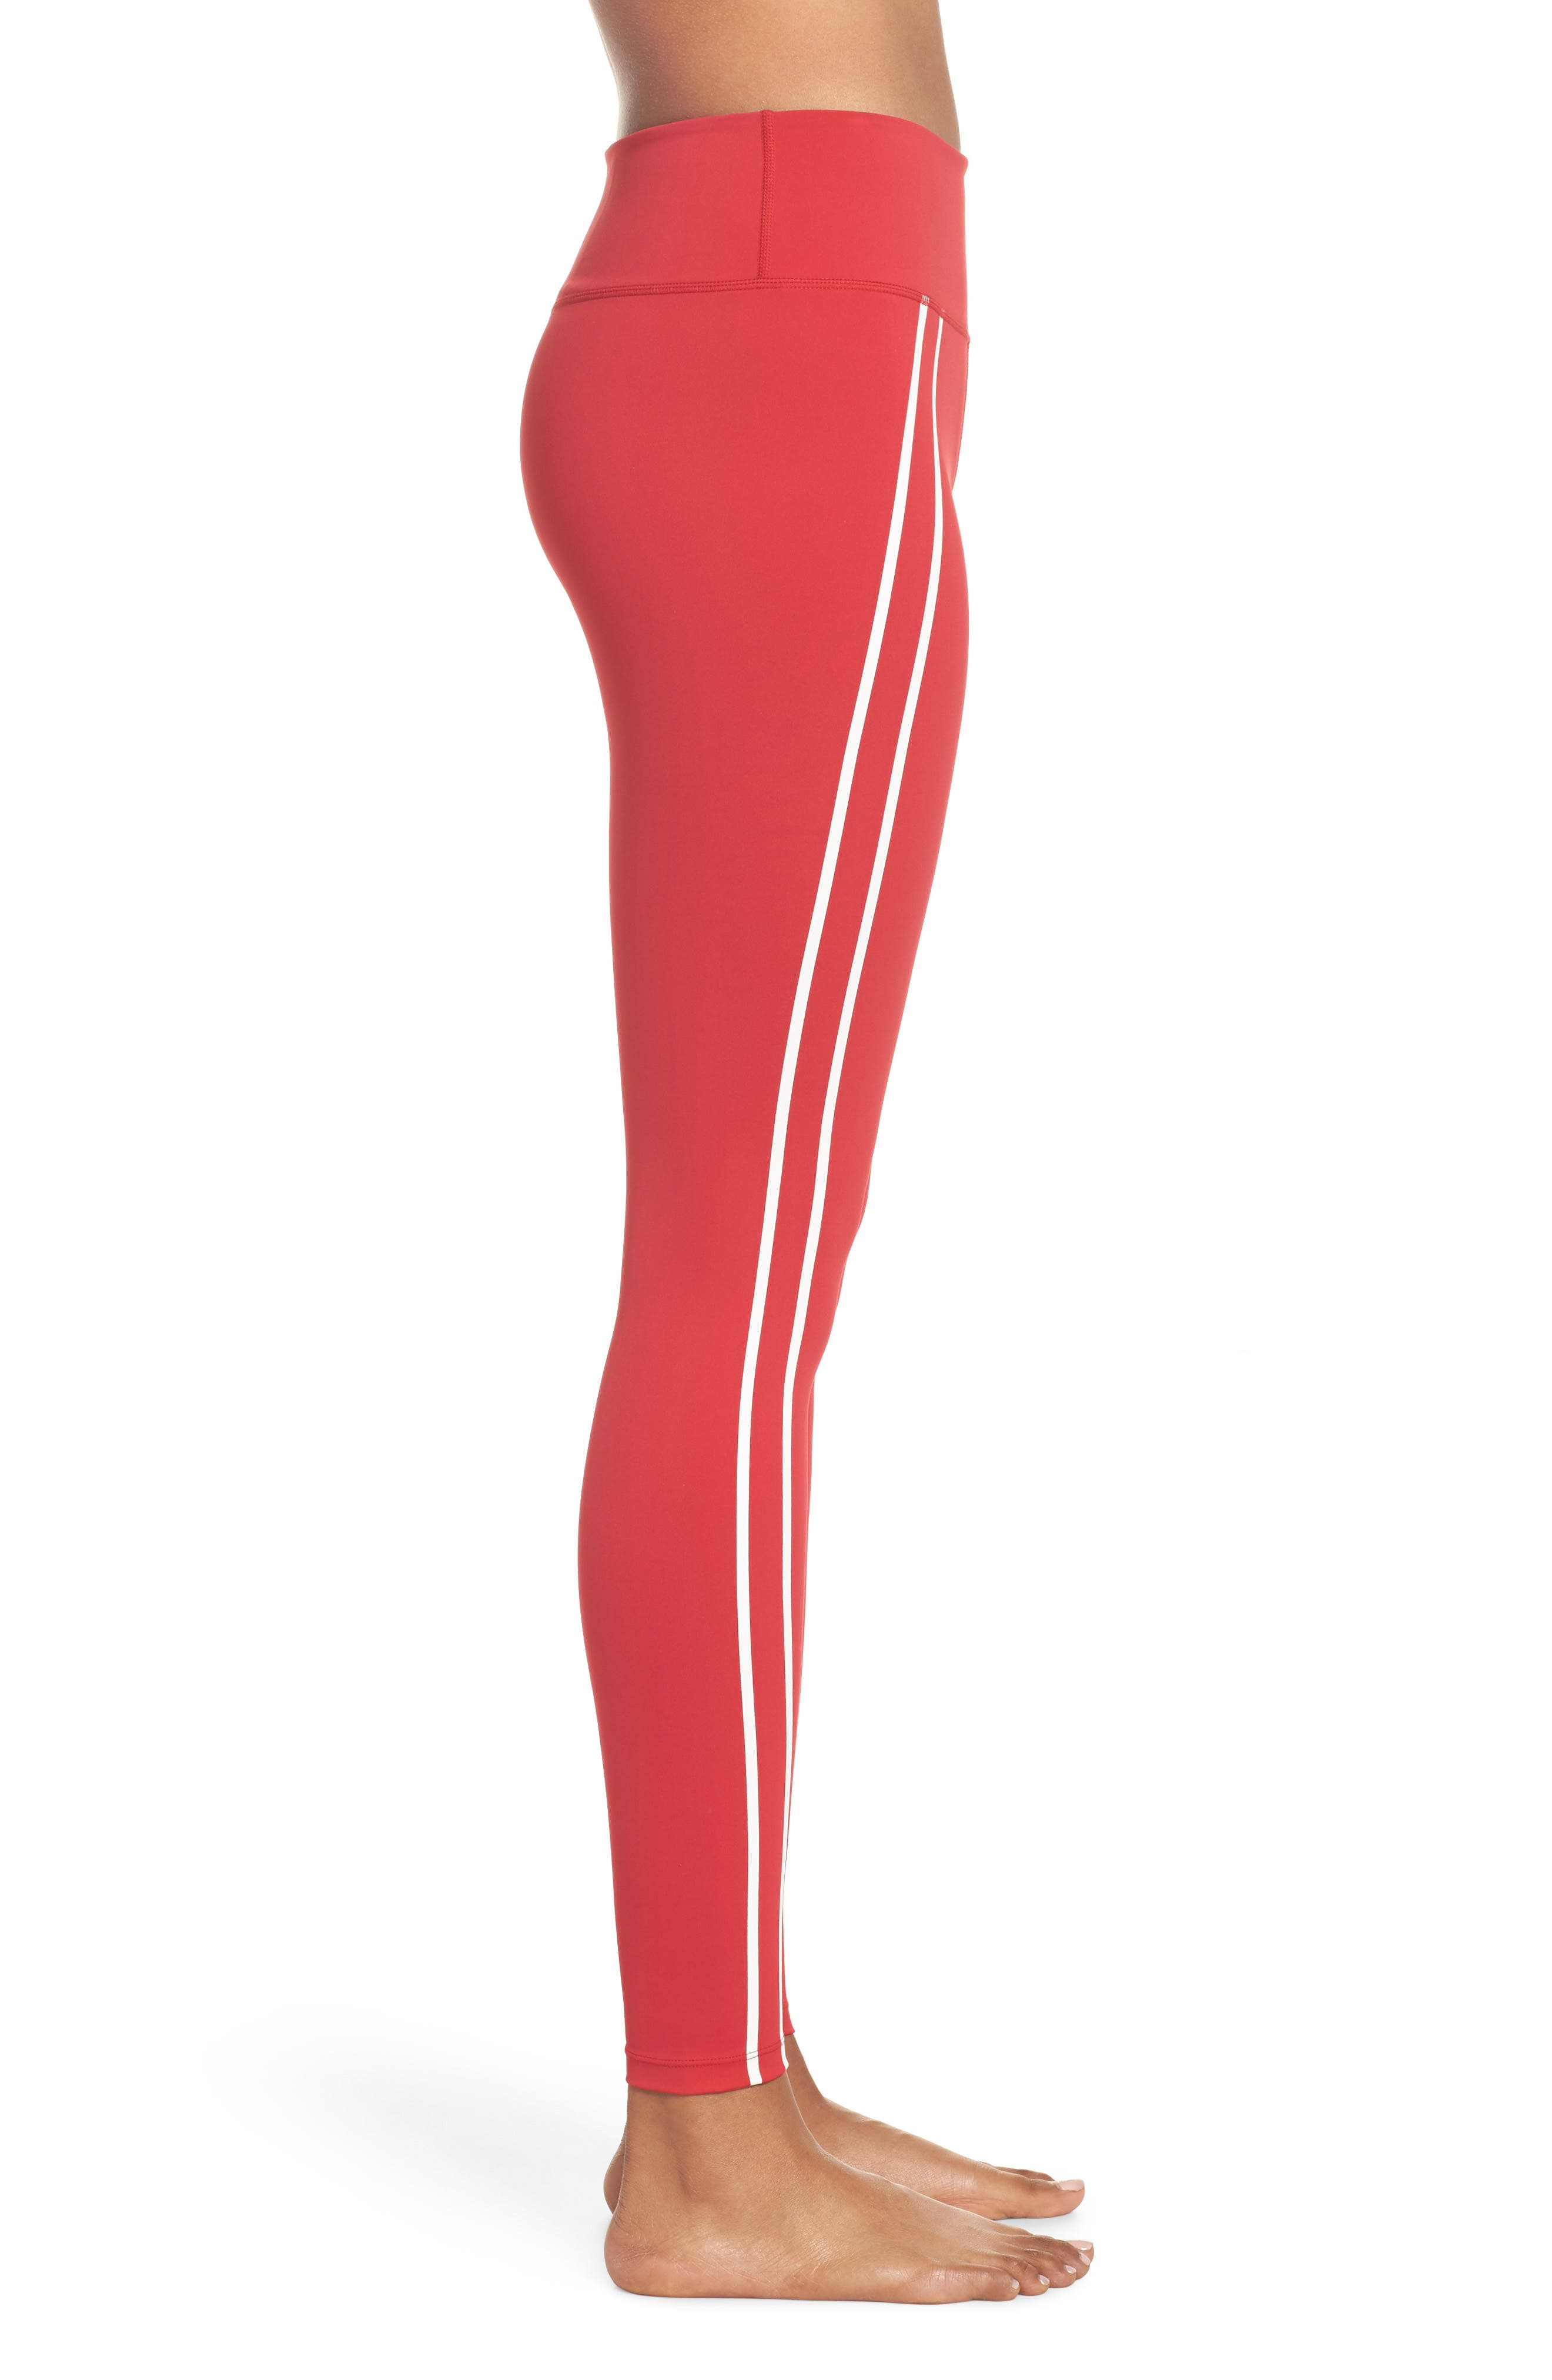 Distance Tights,                             Alternate thumbnail 3, color,                             Havana Red/ Off White